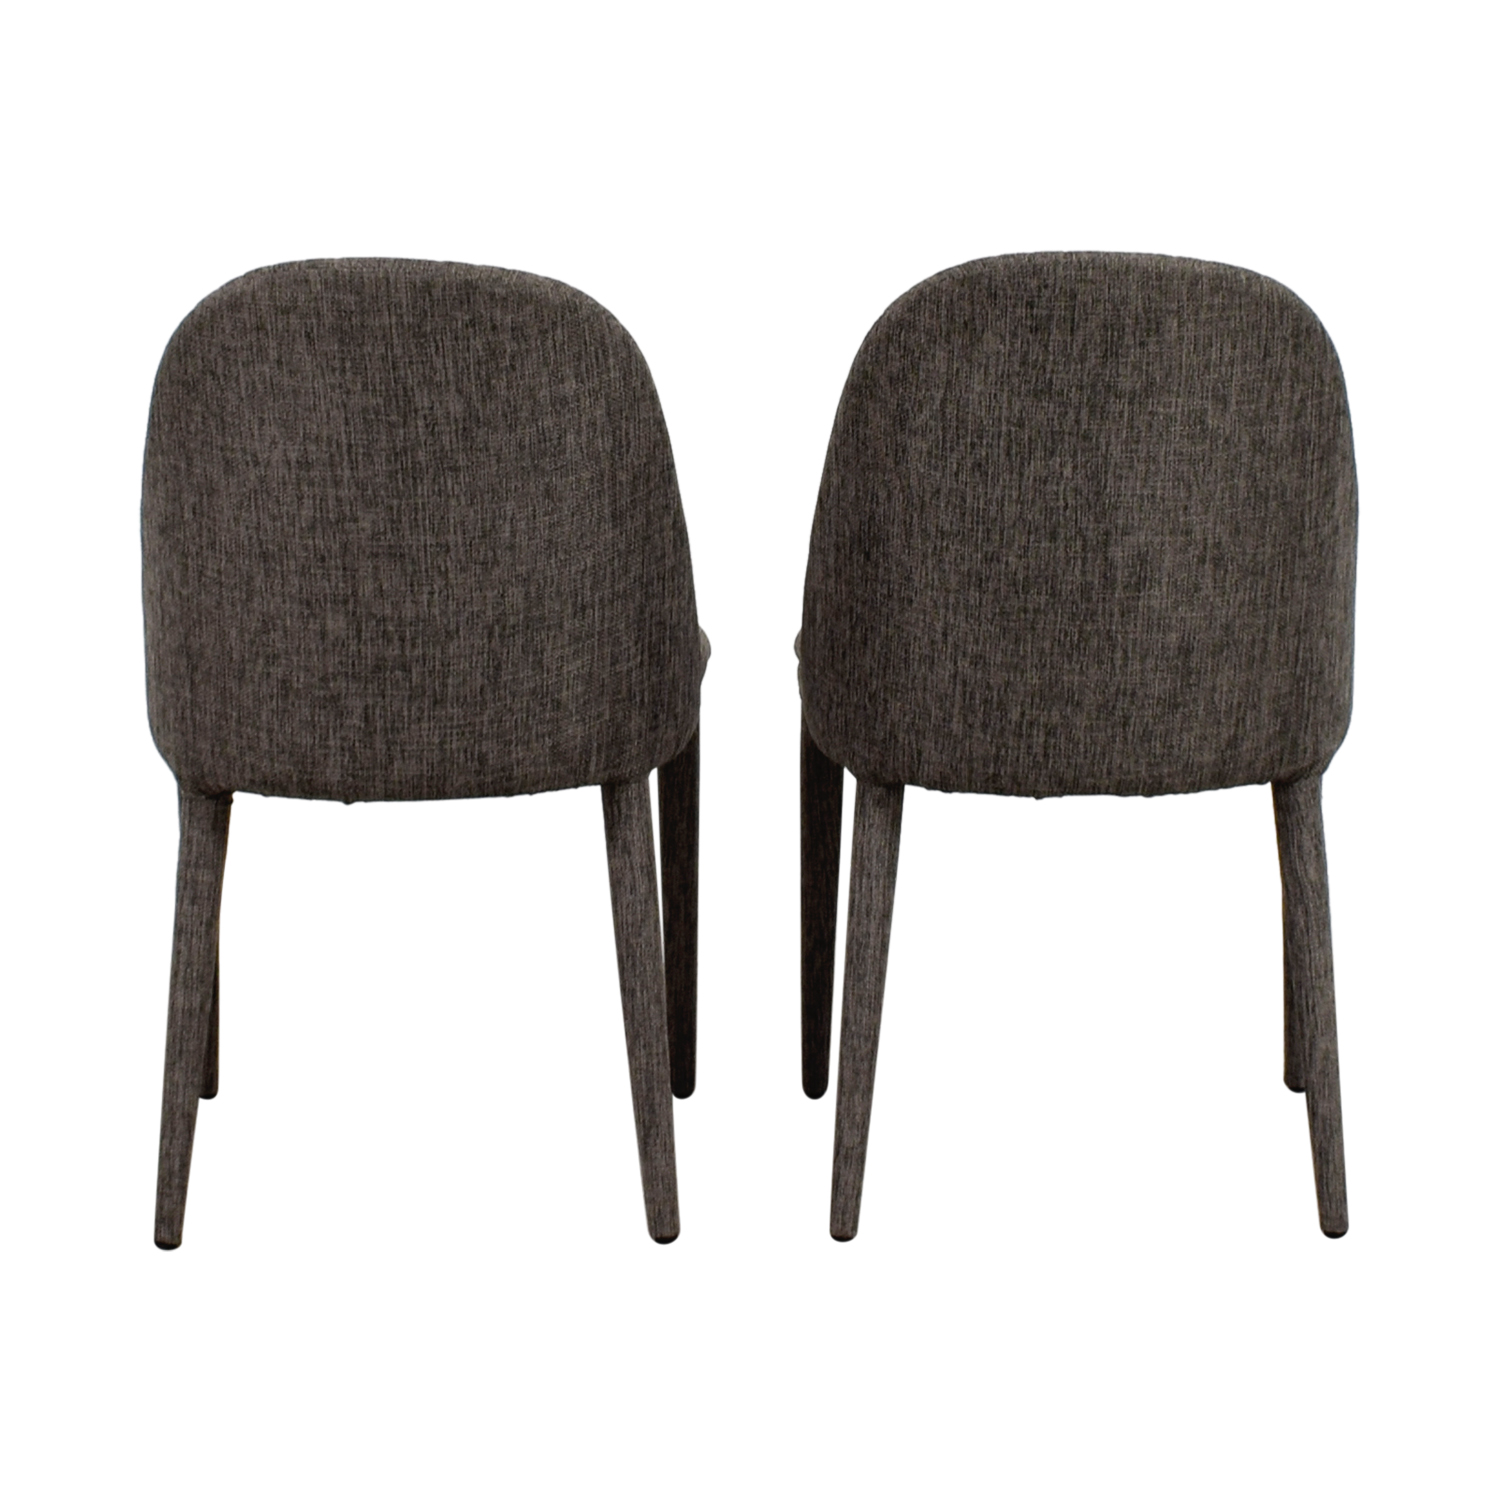 Mercury Row Mercury Row Artrip Grey Upholstered Dining Chairs coupon